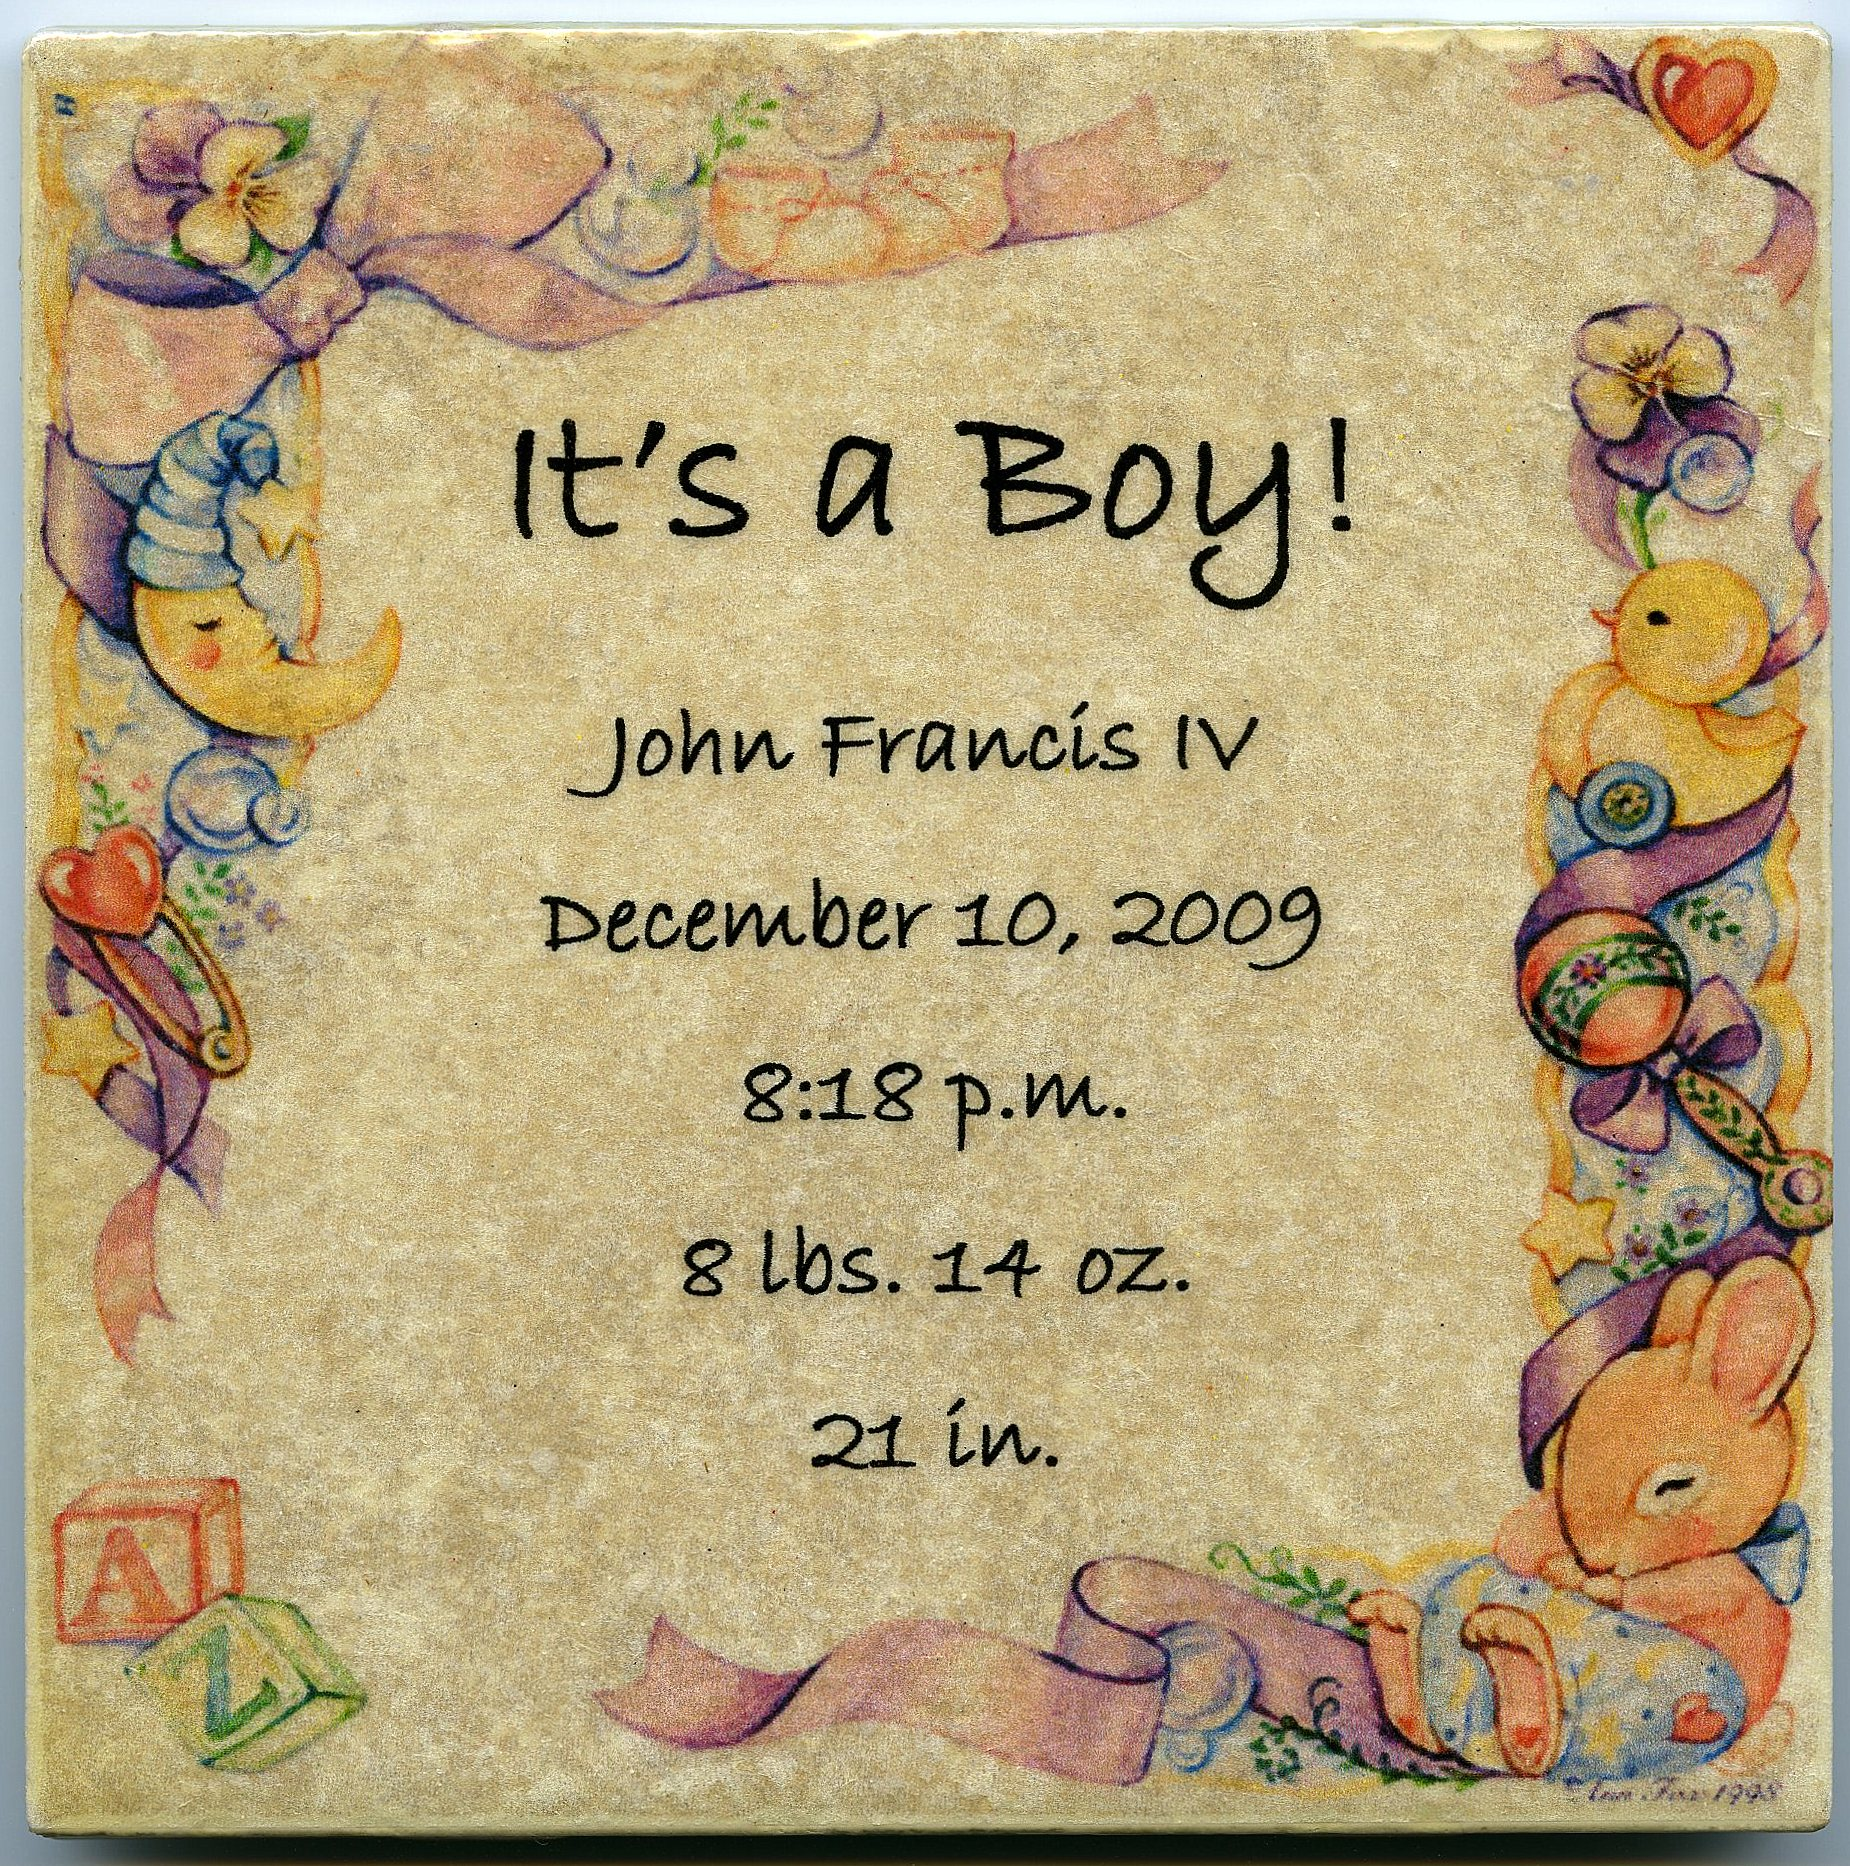 Customized baby announcement on 6 x 6 in ceramic tile personalized customized baby announcement on 6 x 6 in ceramic tile personalized its a boy dailygadgetfo Images